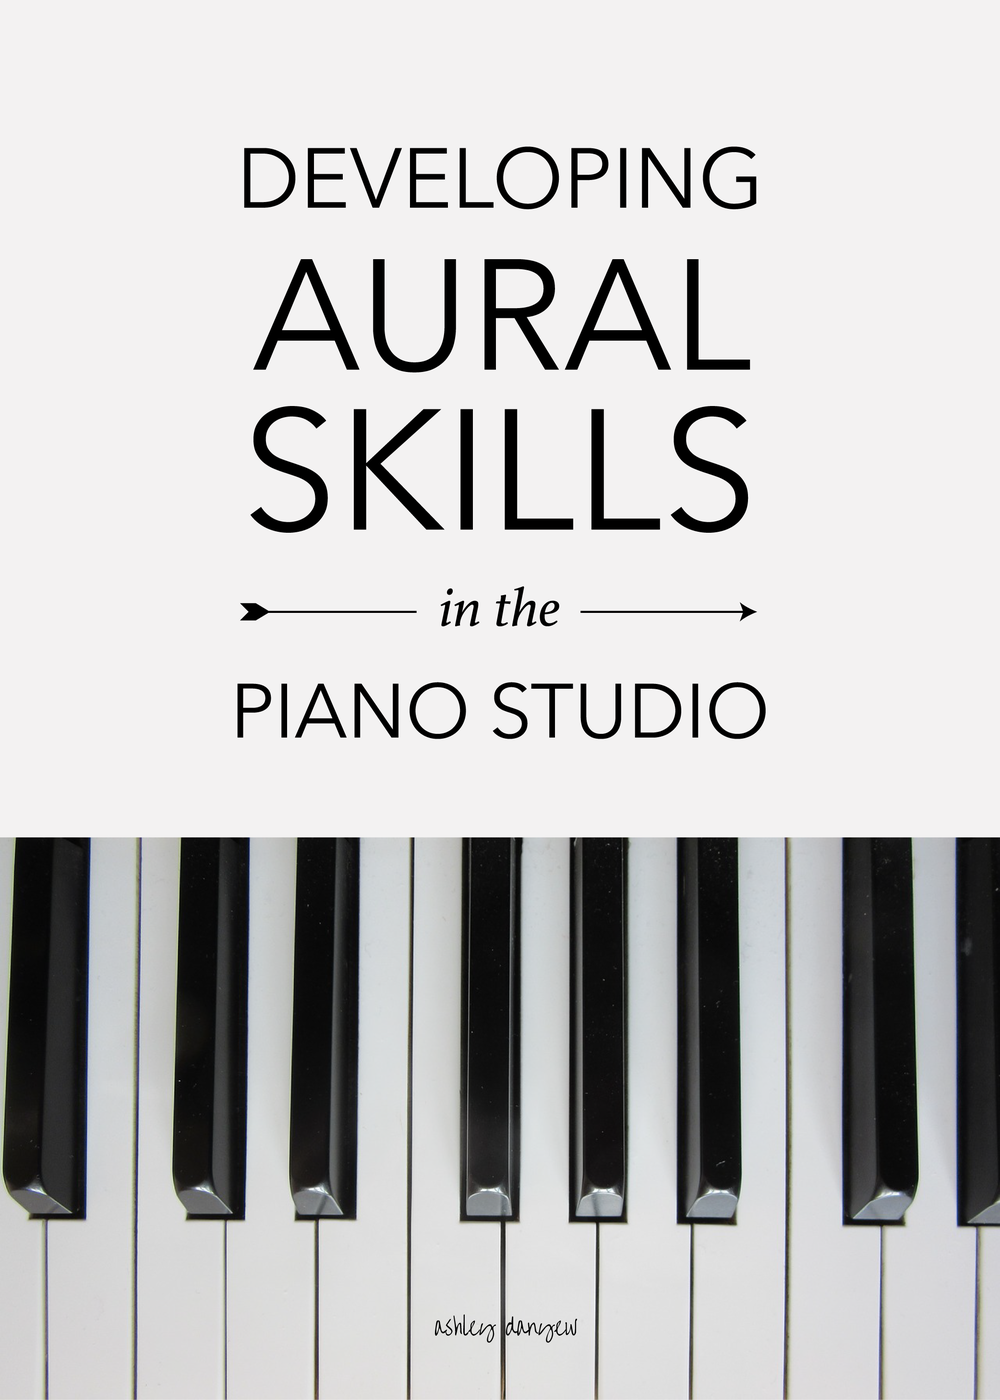 Developing-Aural-Skills-in-the-Piano-Studio-01.png